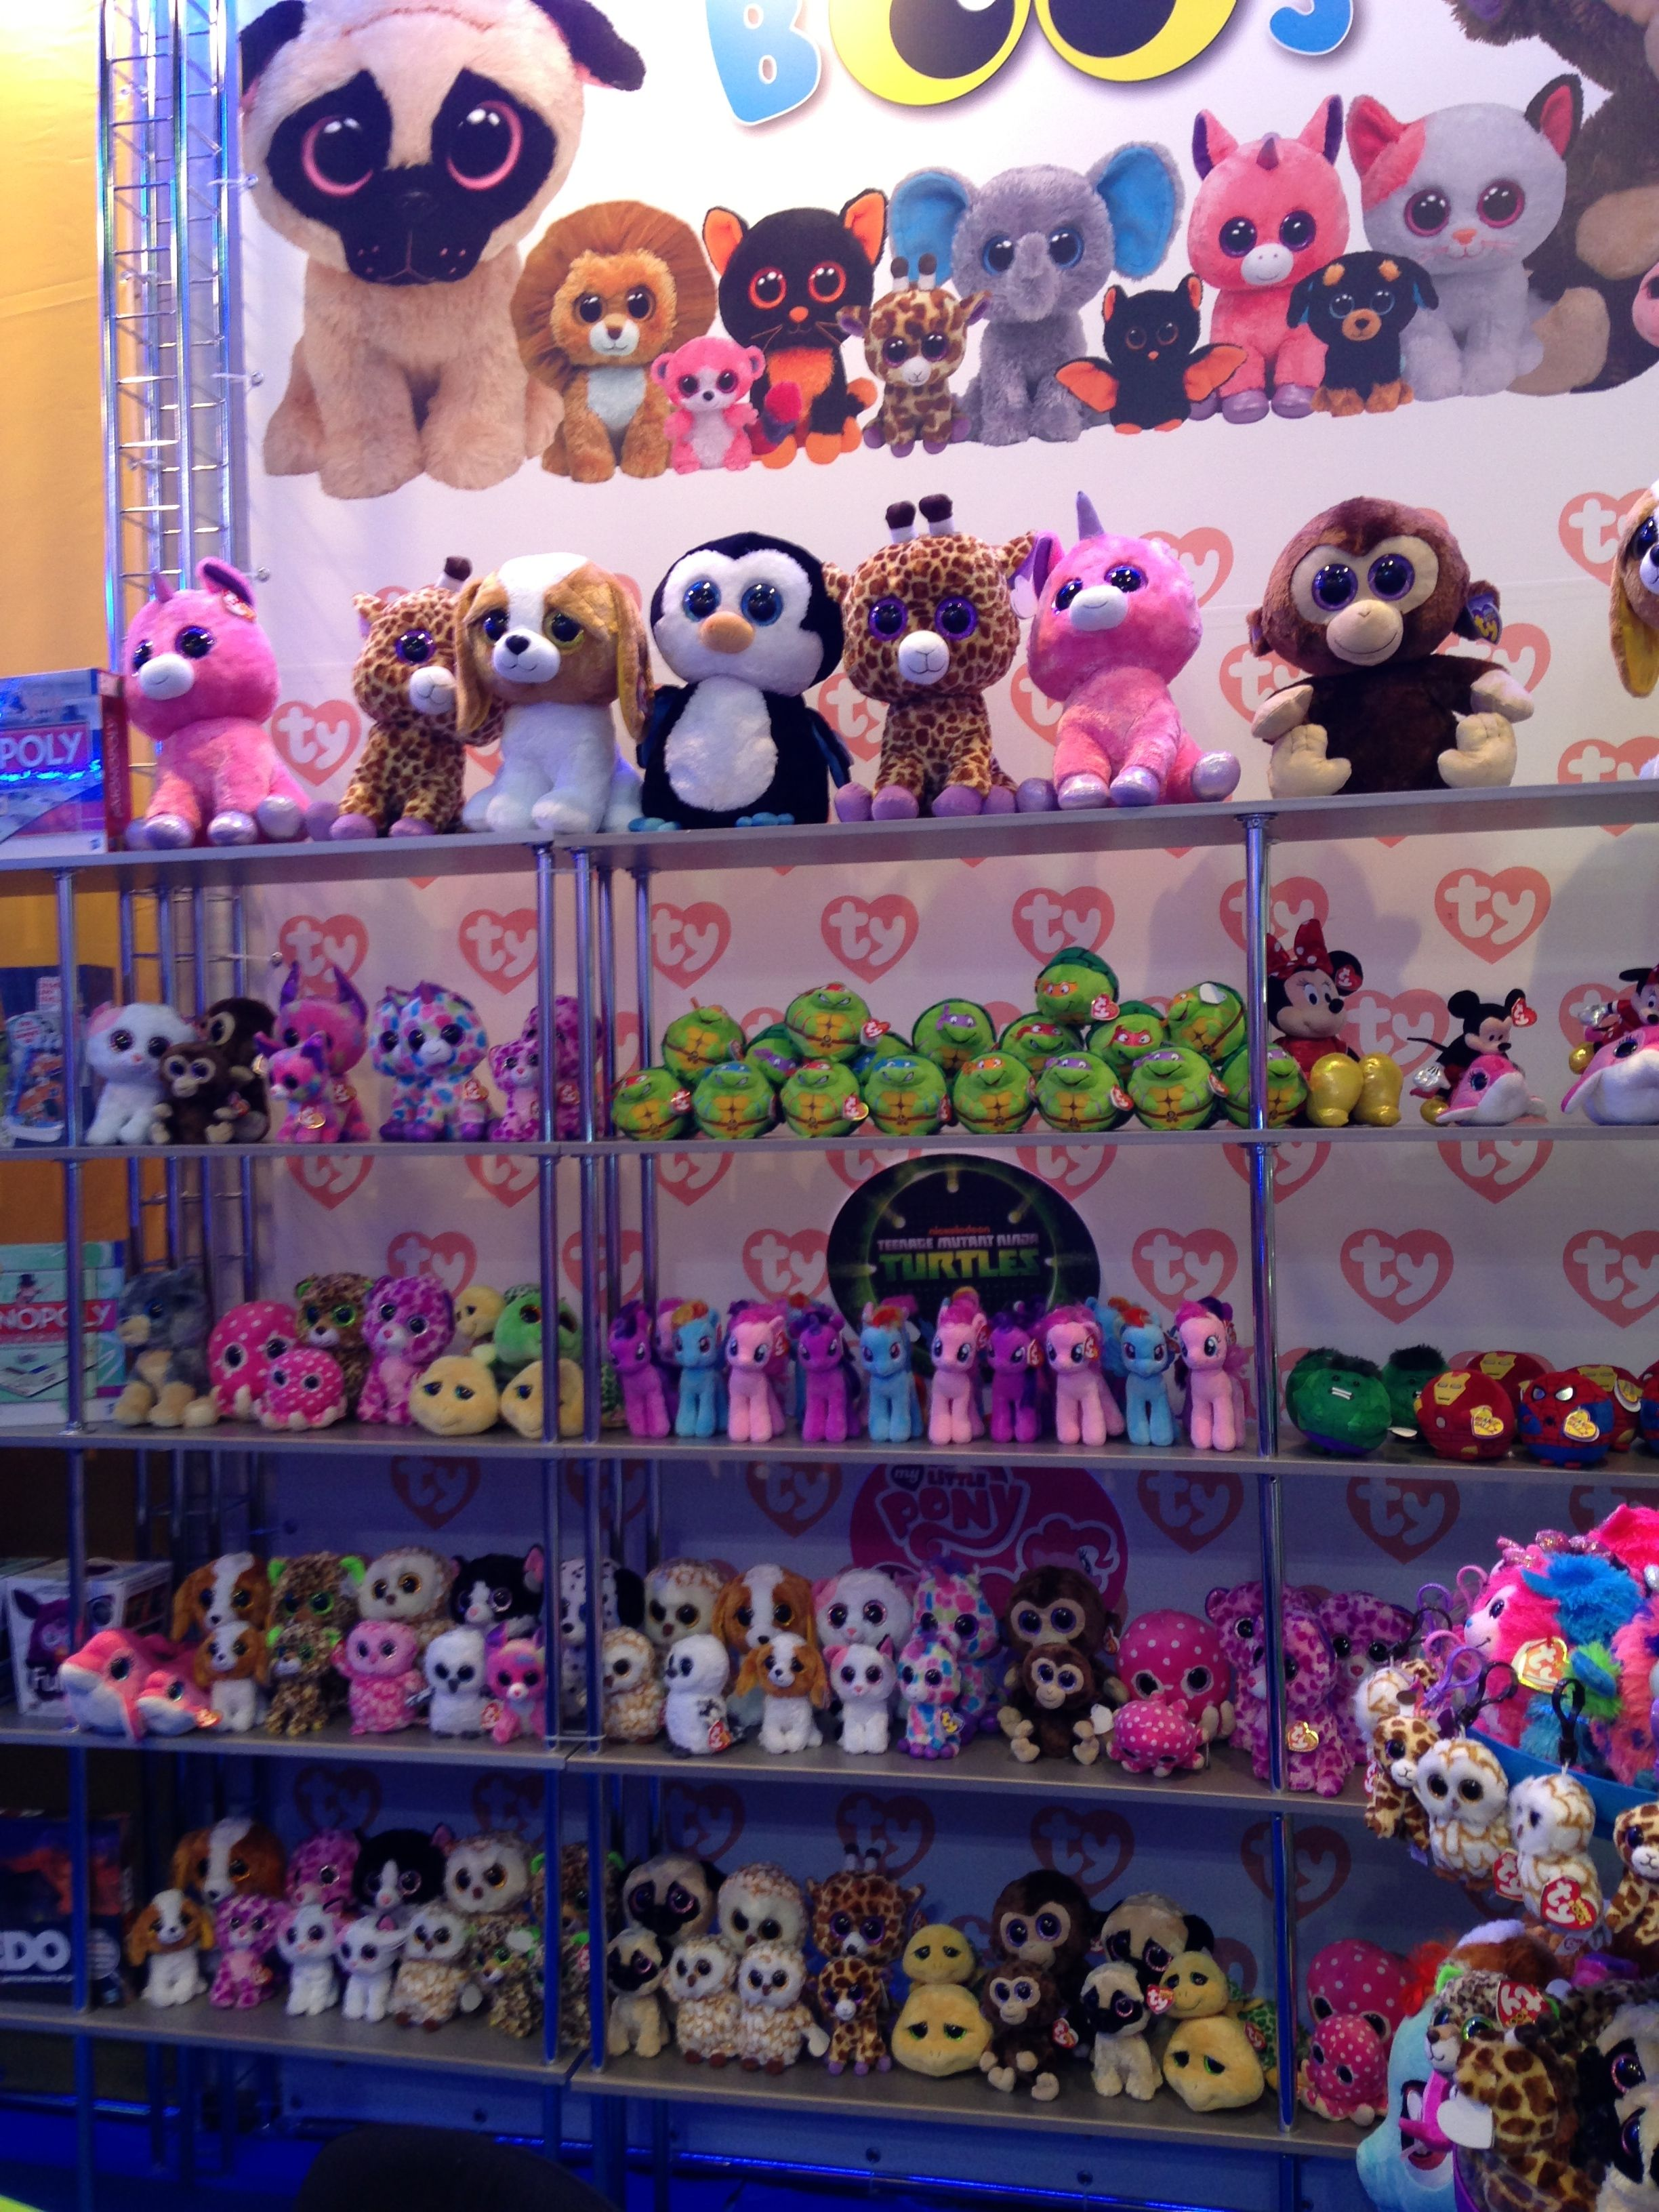 7a241d10df0 ty beanie boos at justice - Google Search